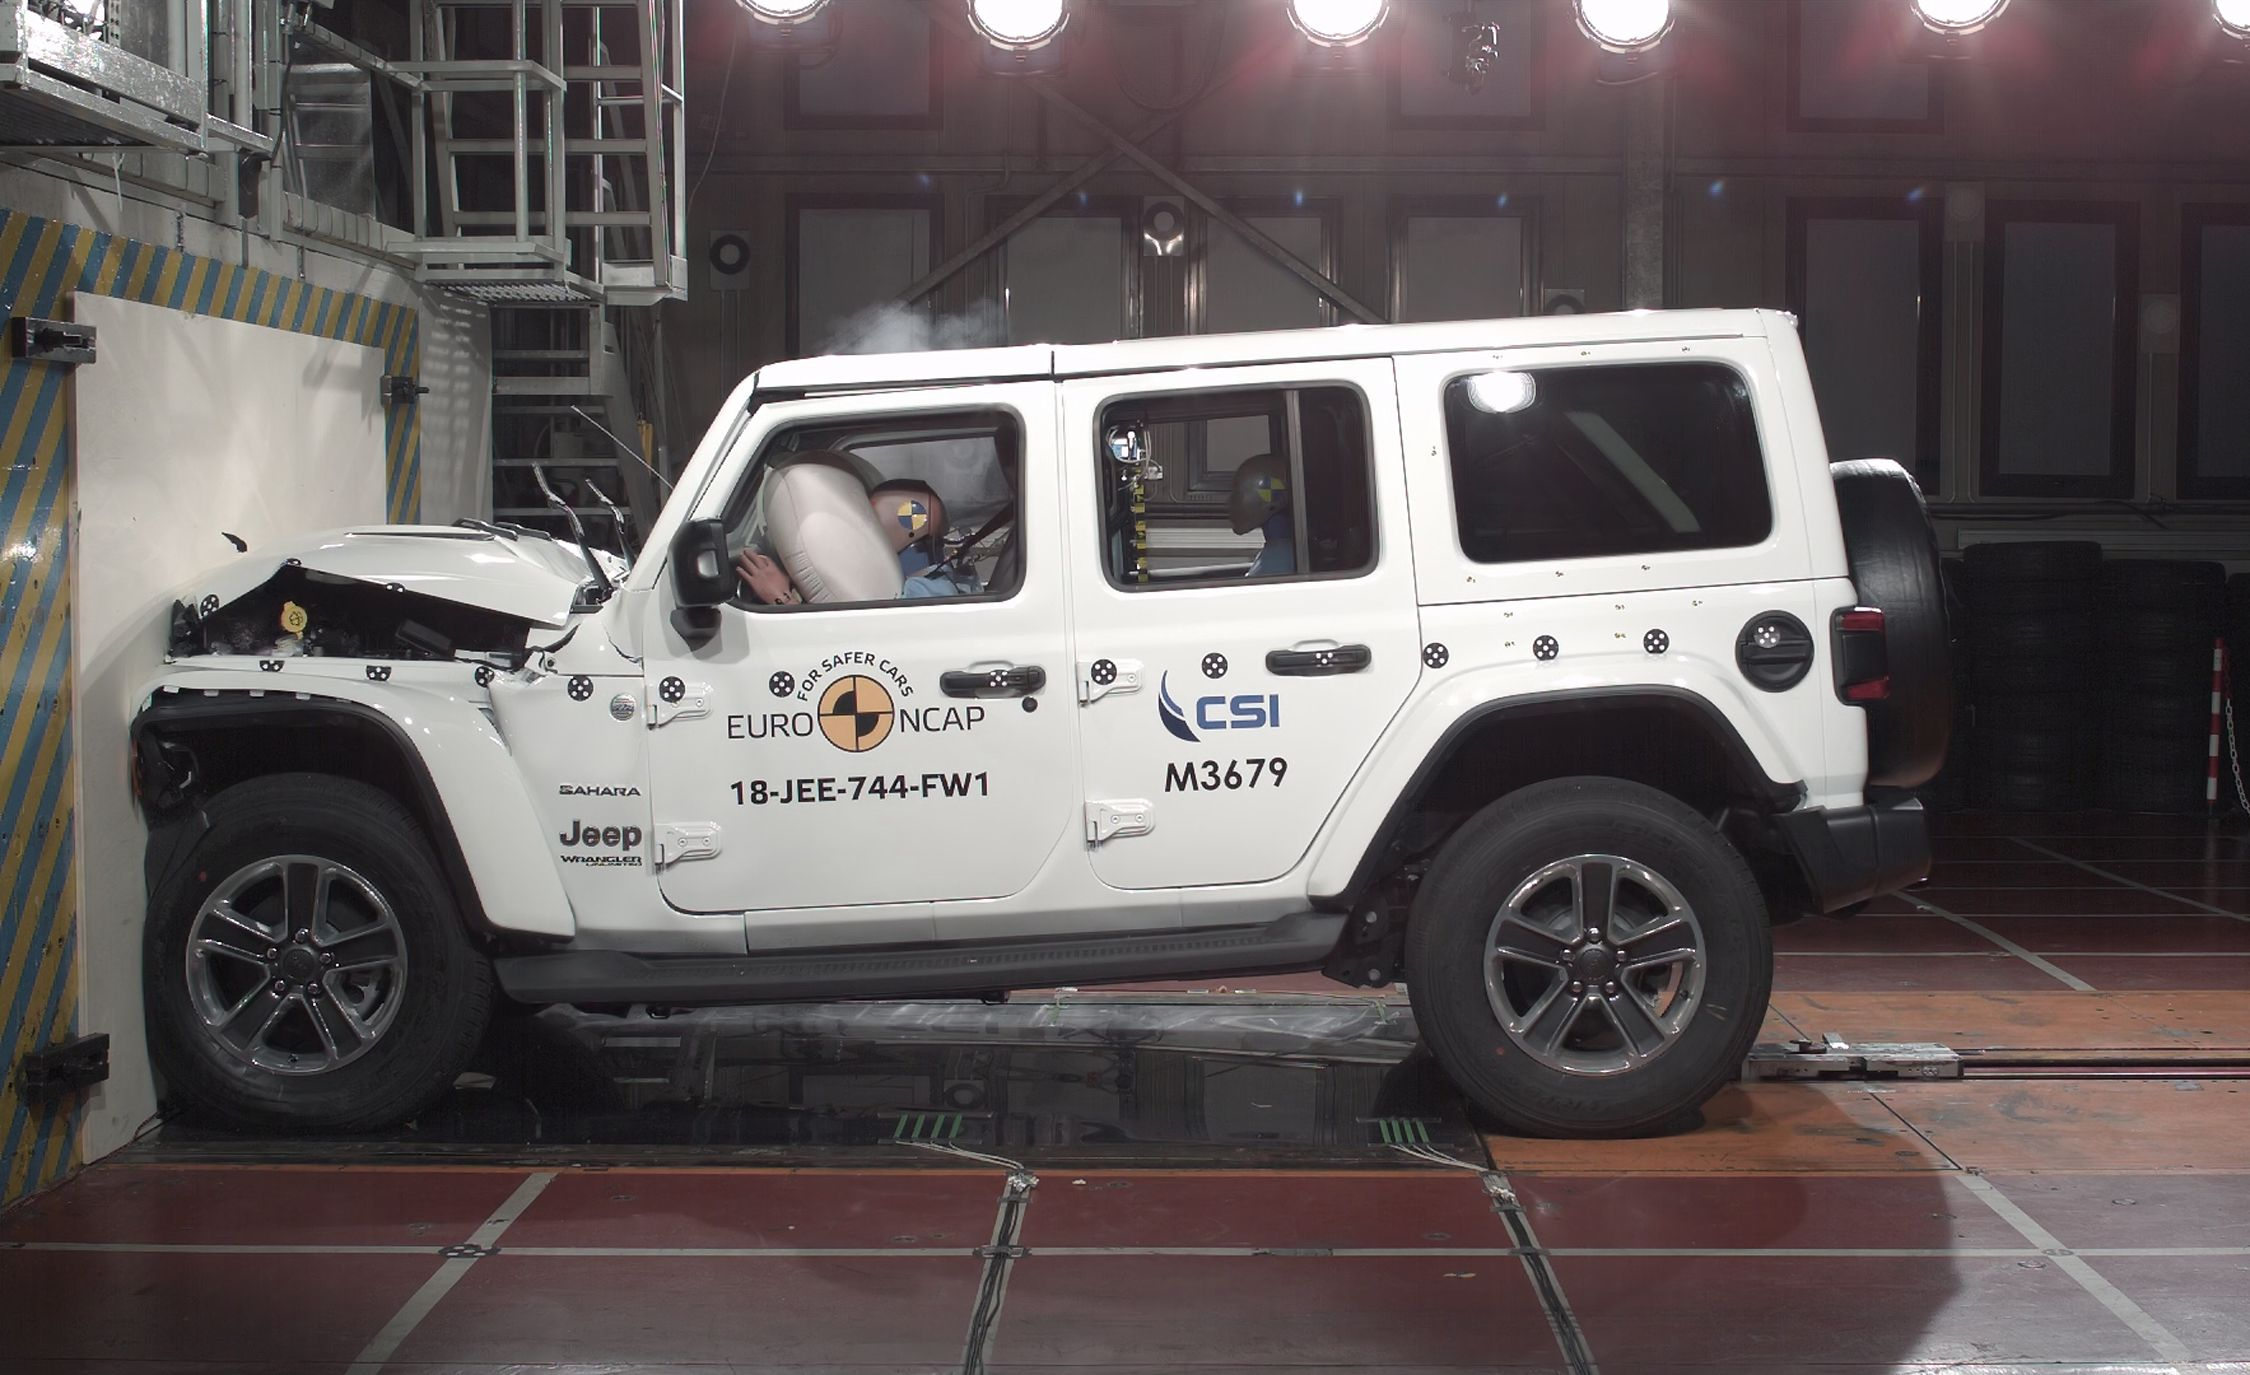 2019 Jeep Wrangler Crash Test Euro Ncap Gives Only One Star